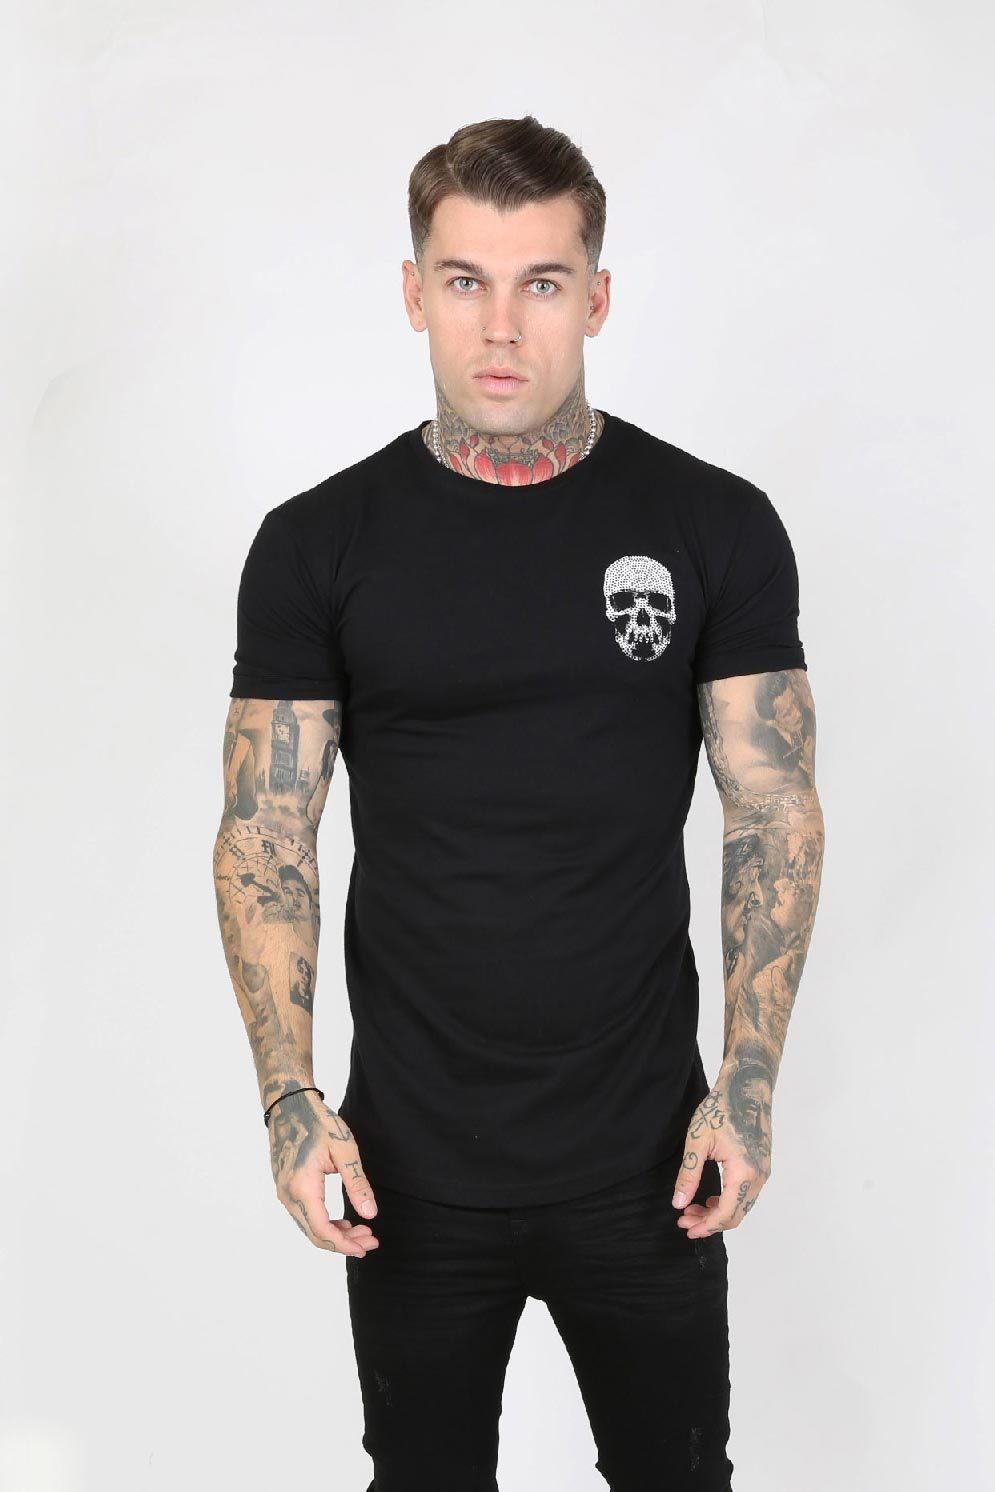 Judas Sinned Junio Crystal Skull Men's T-Shirt - Black - Judas Sinned Clothing